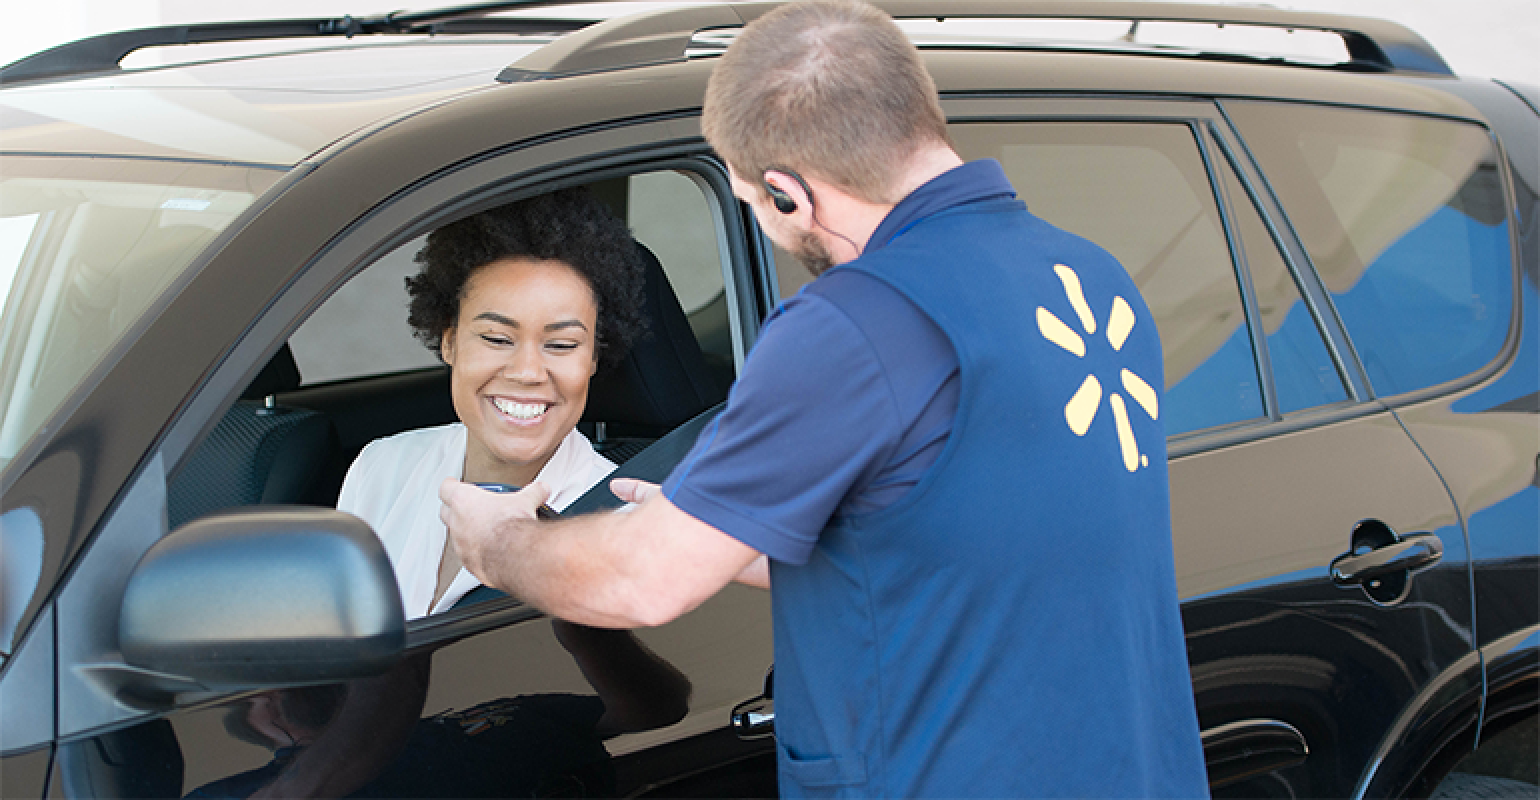 Walmart makes point with pickup | Supermarket News